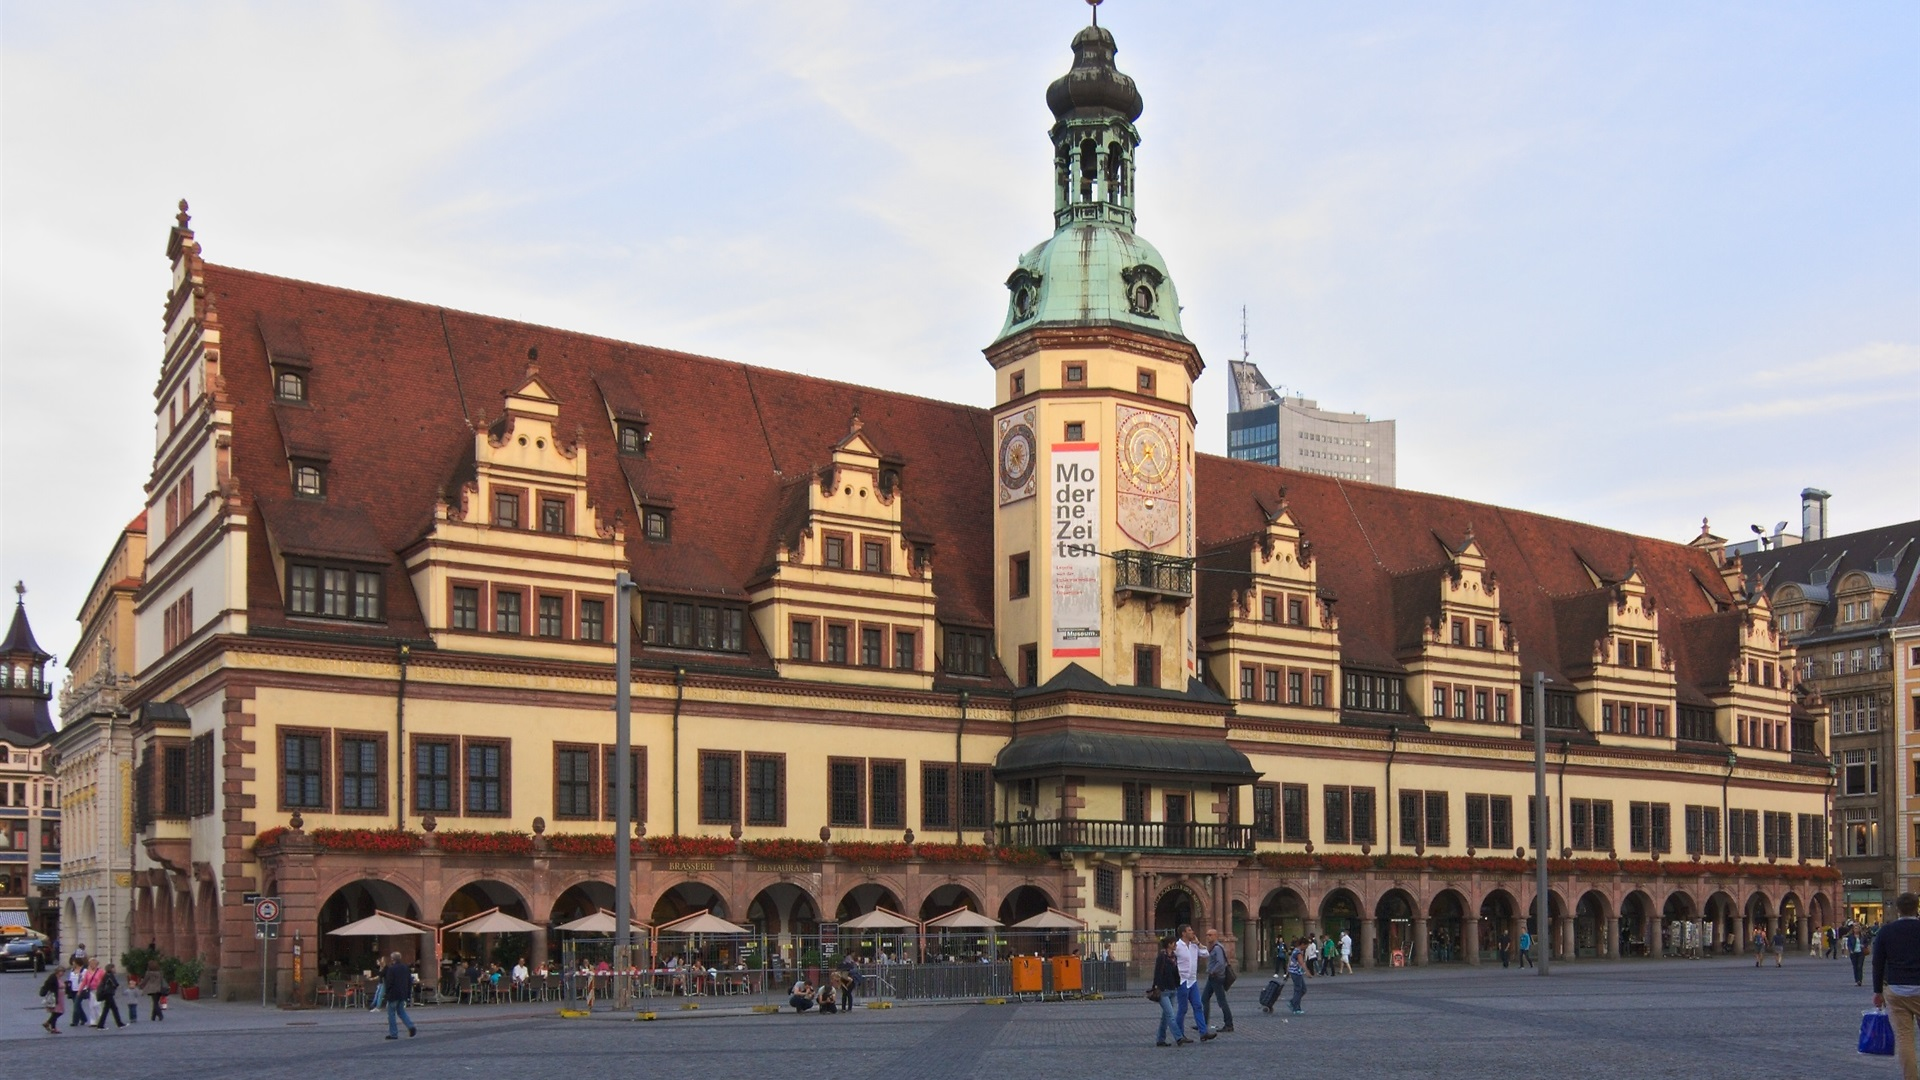 Wallpaper Leipzig Altes Rathaus Building People Street Germany 1920x1440 Hd Picture Image